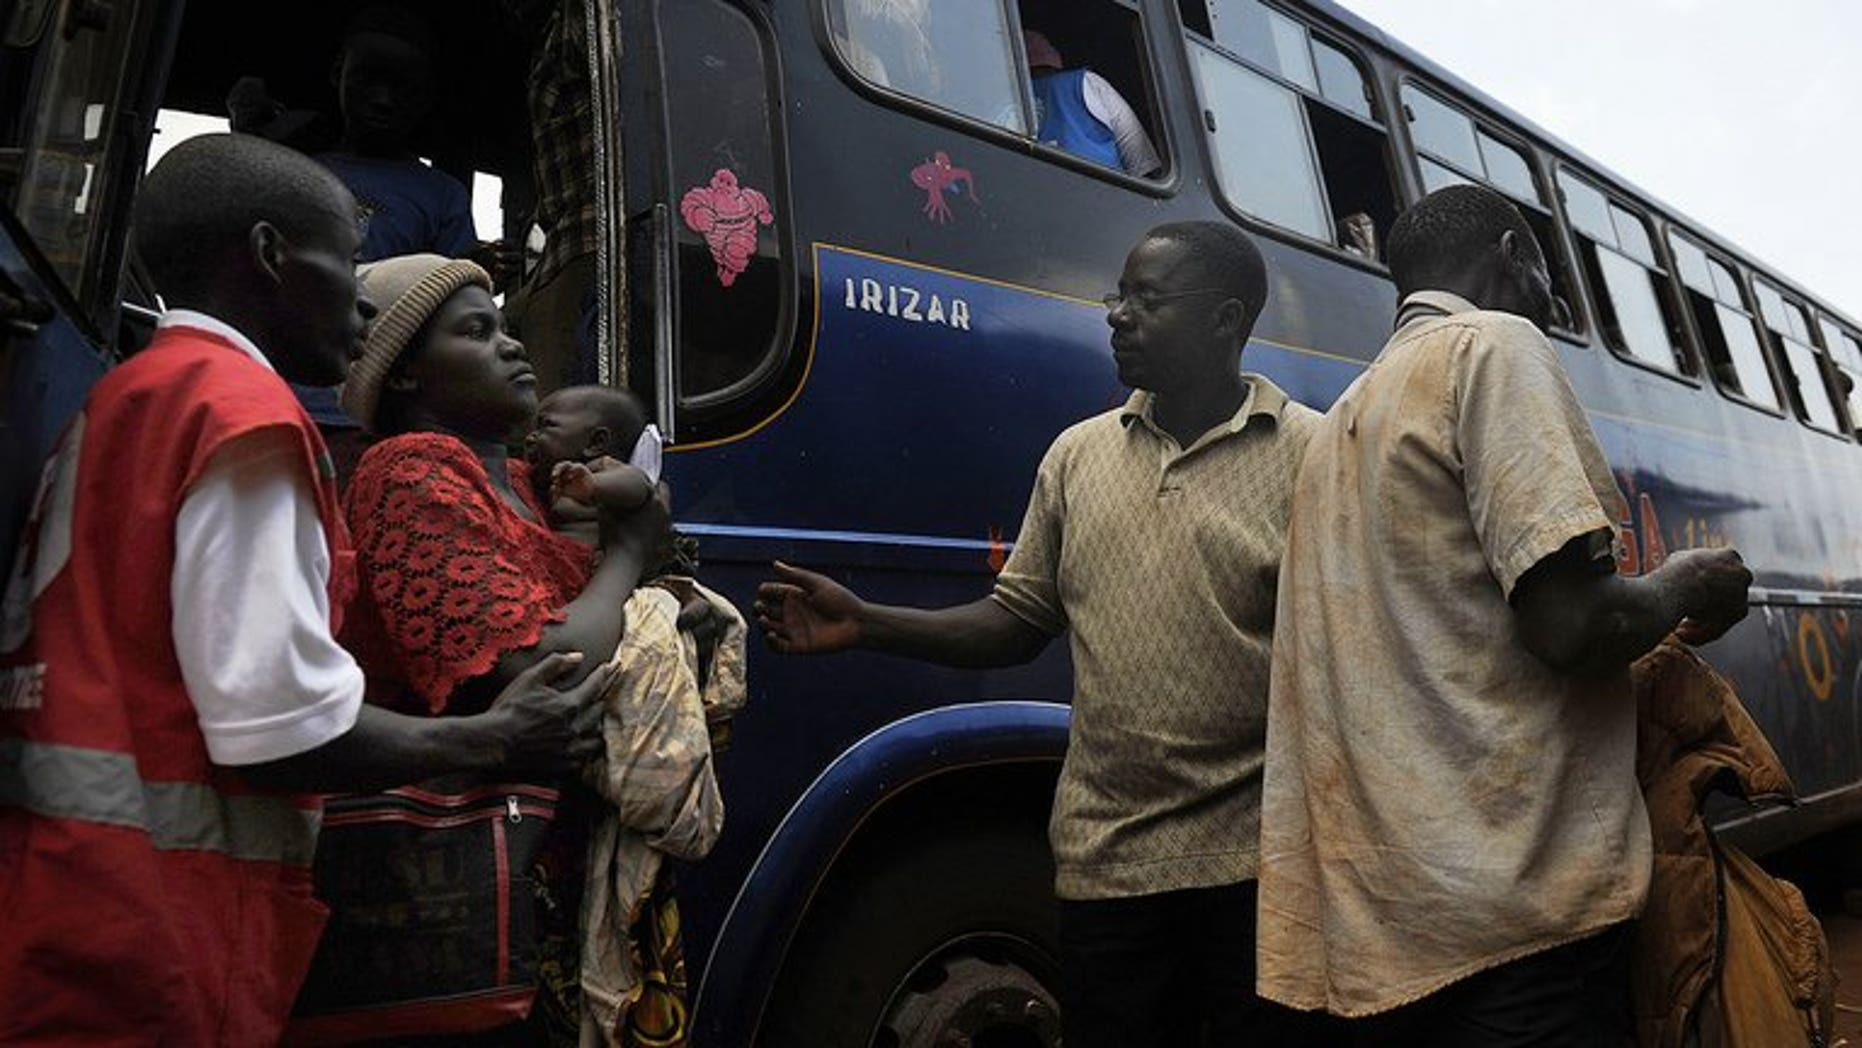 """Burundi refugees arrive at a transit camp in Musenyi, south Burundi last November after returning from Tanzania. At least 25,000 Burundian refugees living in Tanzania have been forcibly repatriated over the past month, a UN official said Thursday, describing a """"dramatic"""" humanitarian situation."""